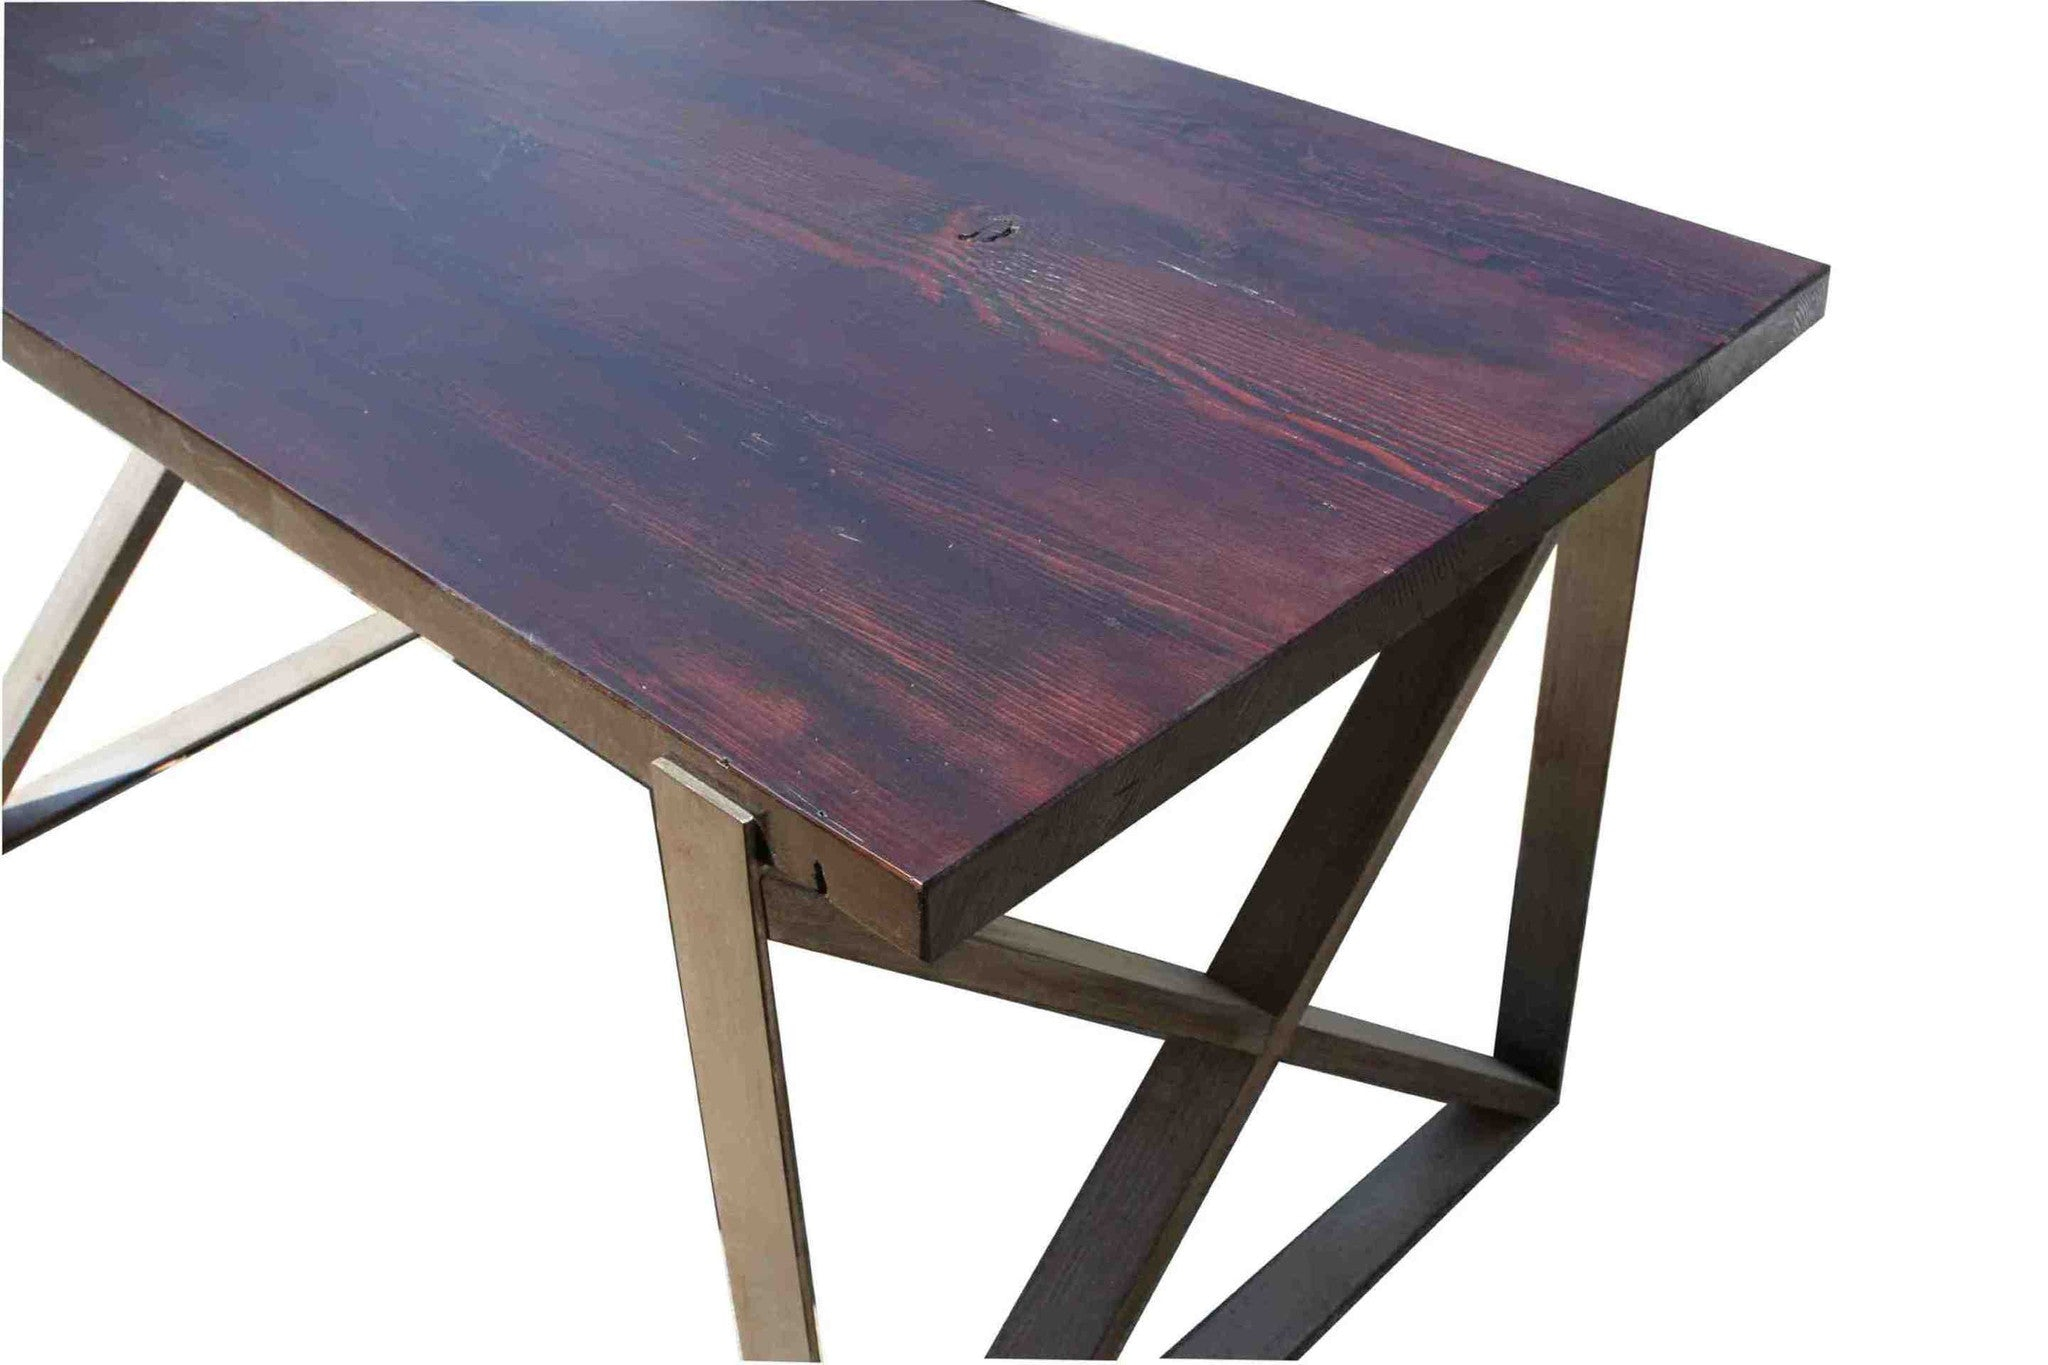 Chicago Industrial Dining Table in Reclaimed Wood – Mortise & Tenon